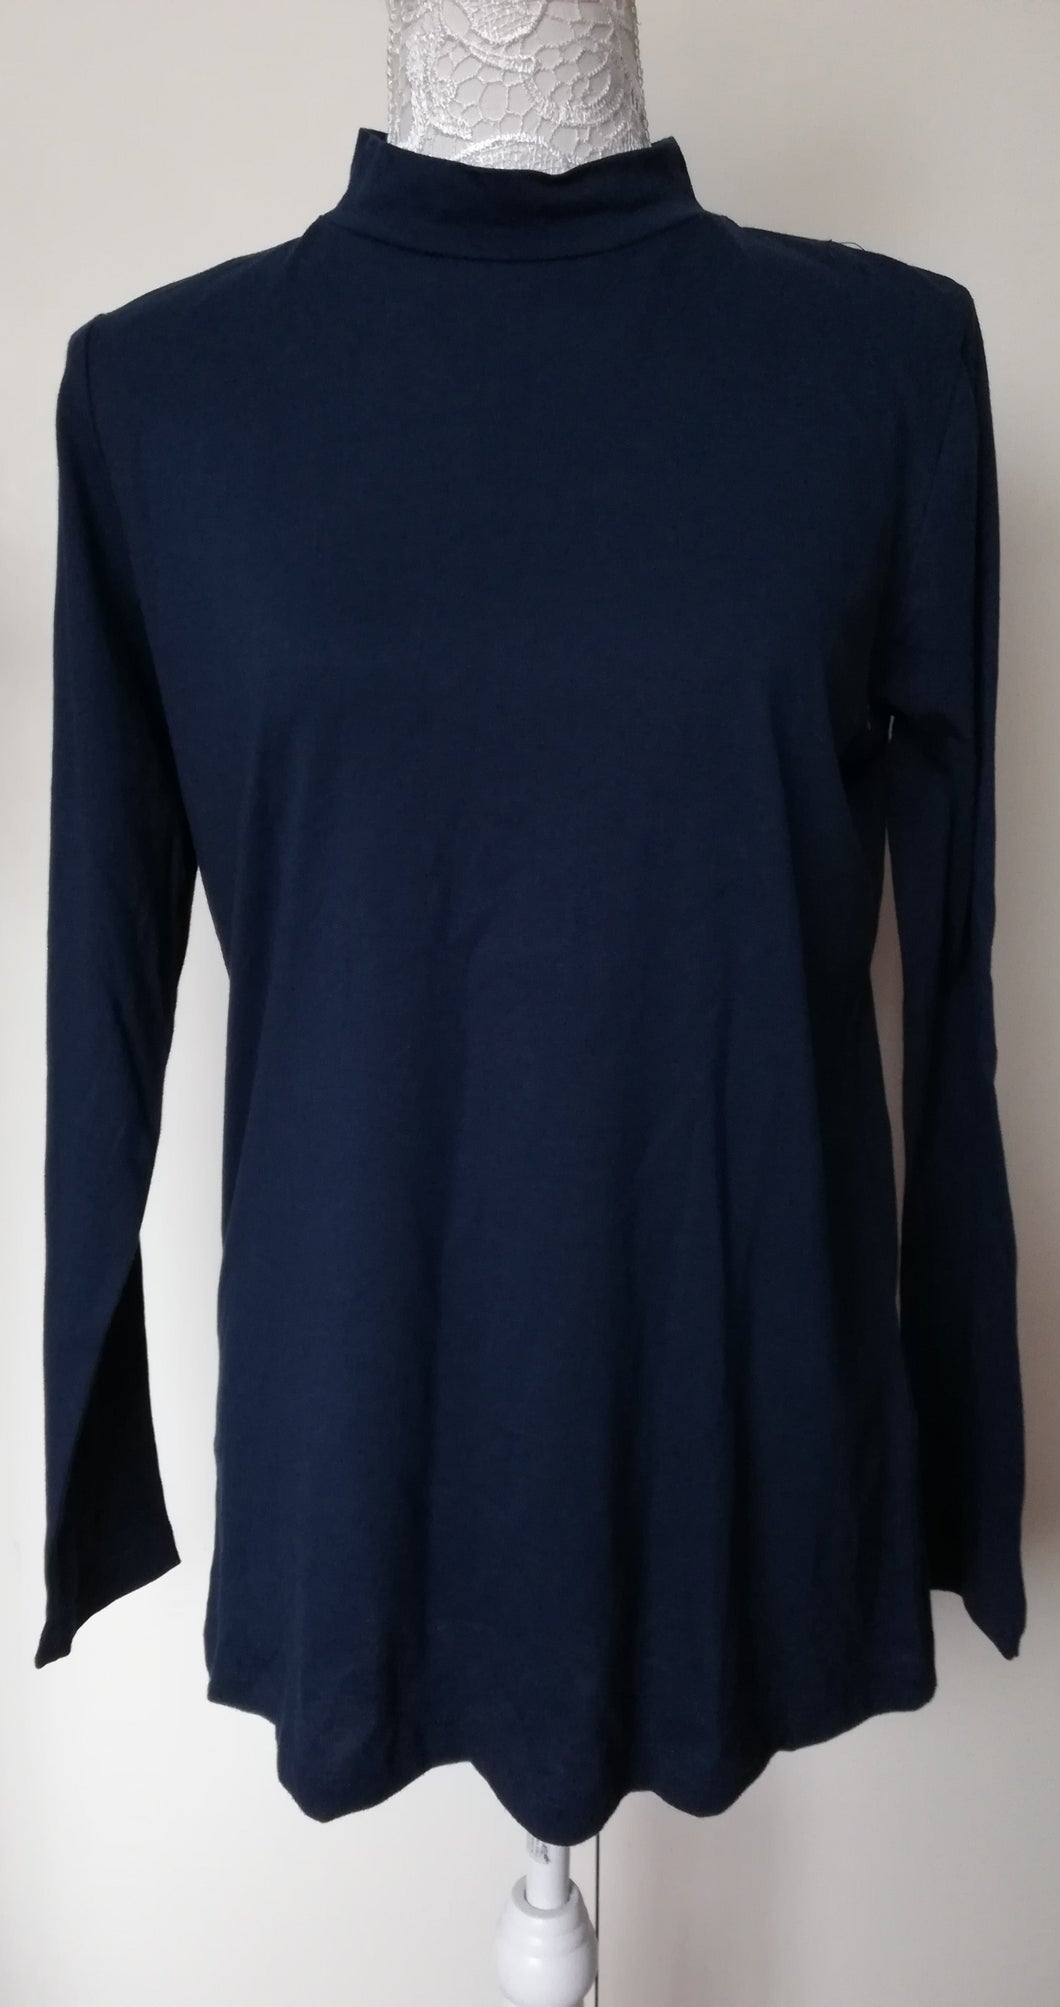 Lily & me navy turtle neck top size 10 NO RETURN